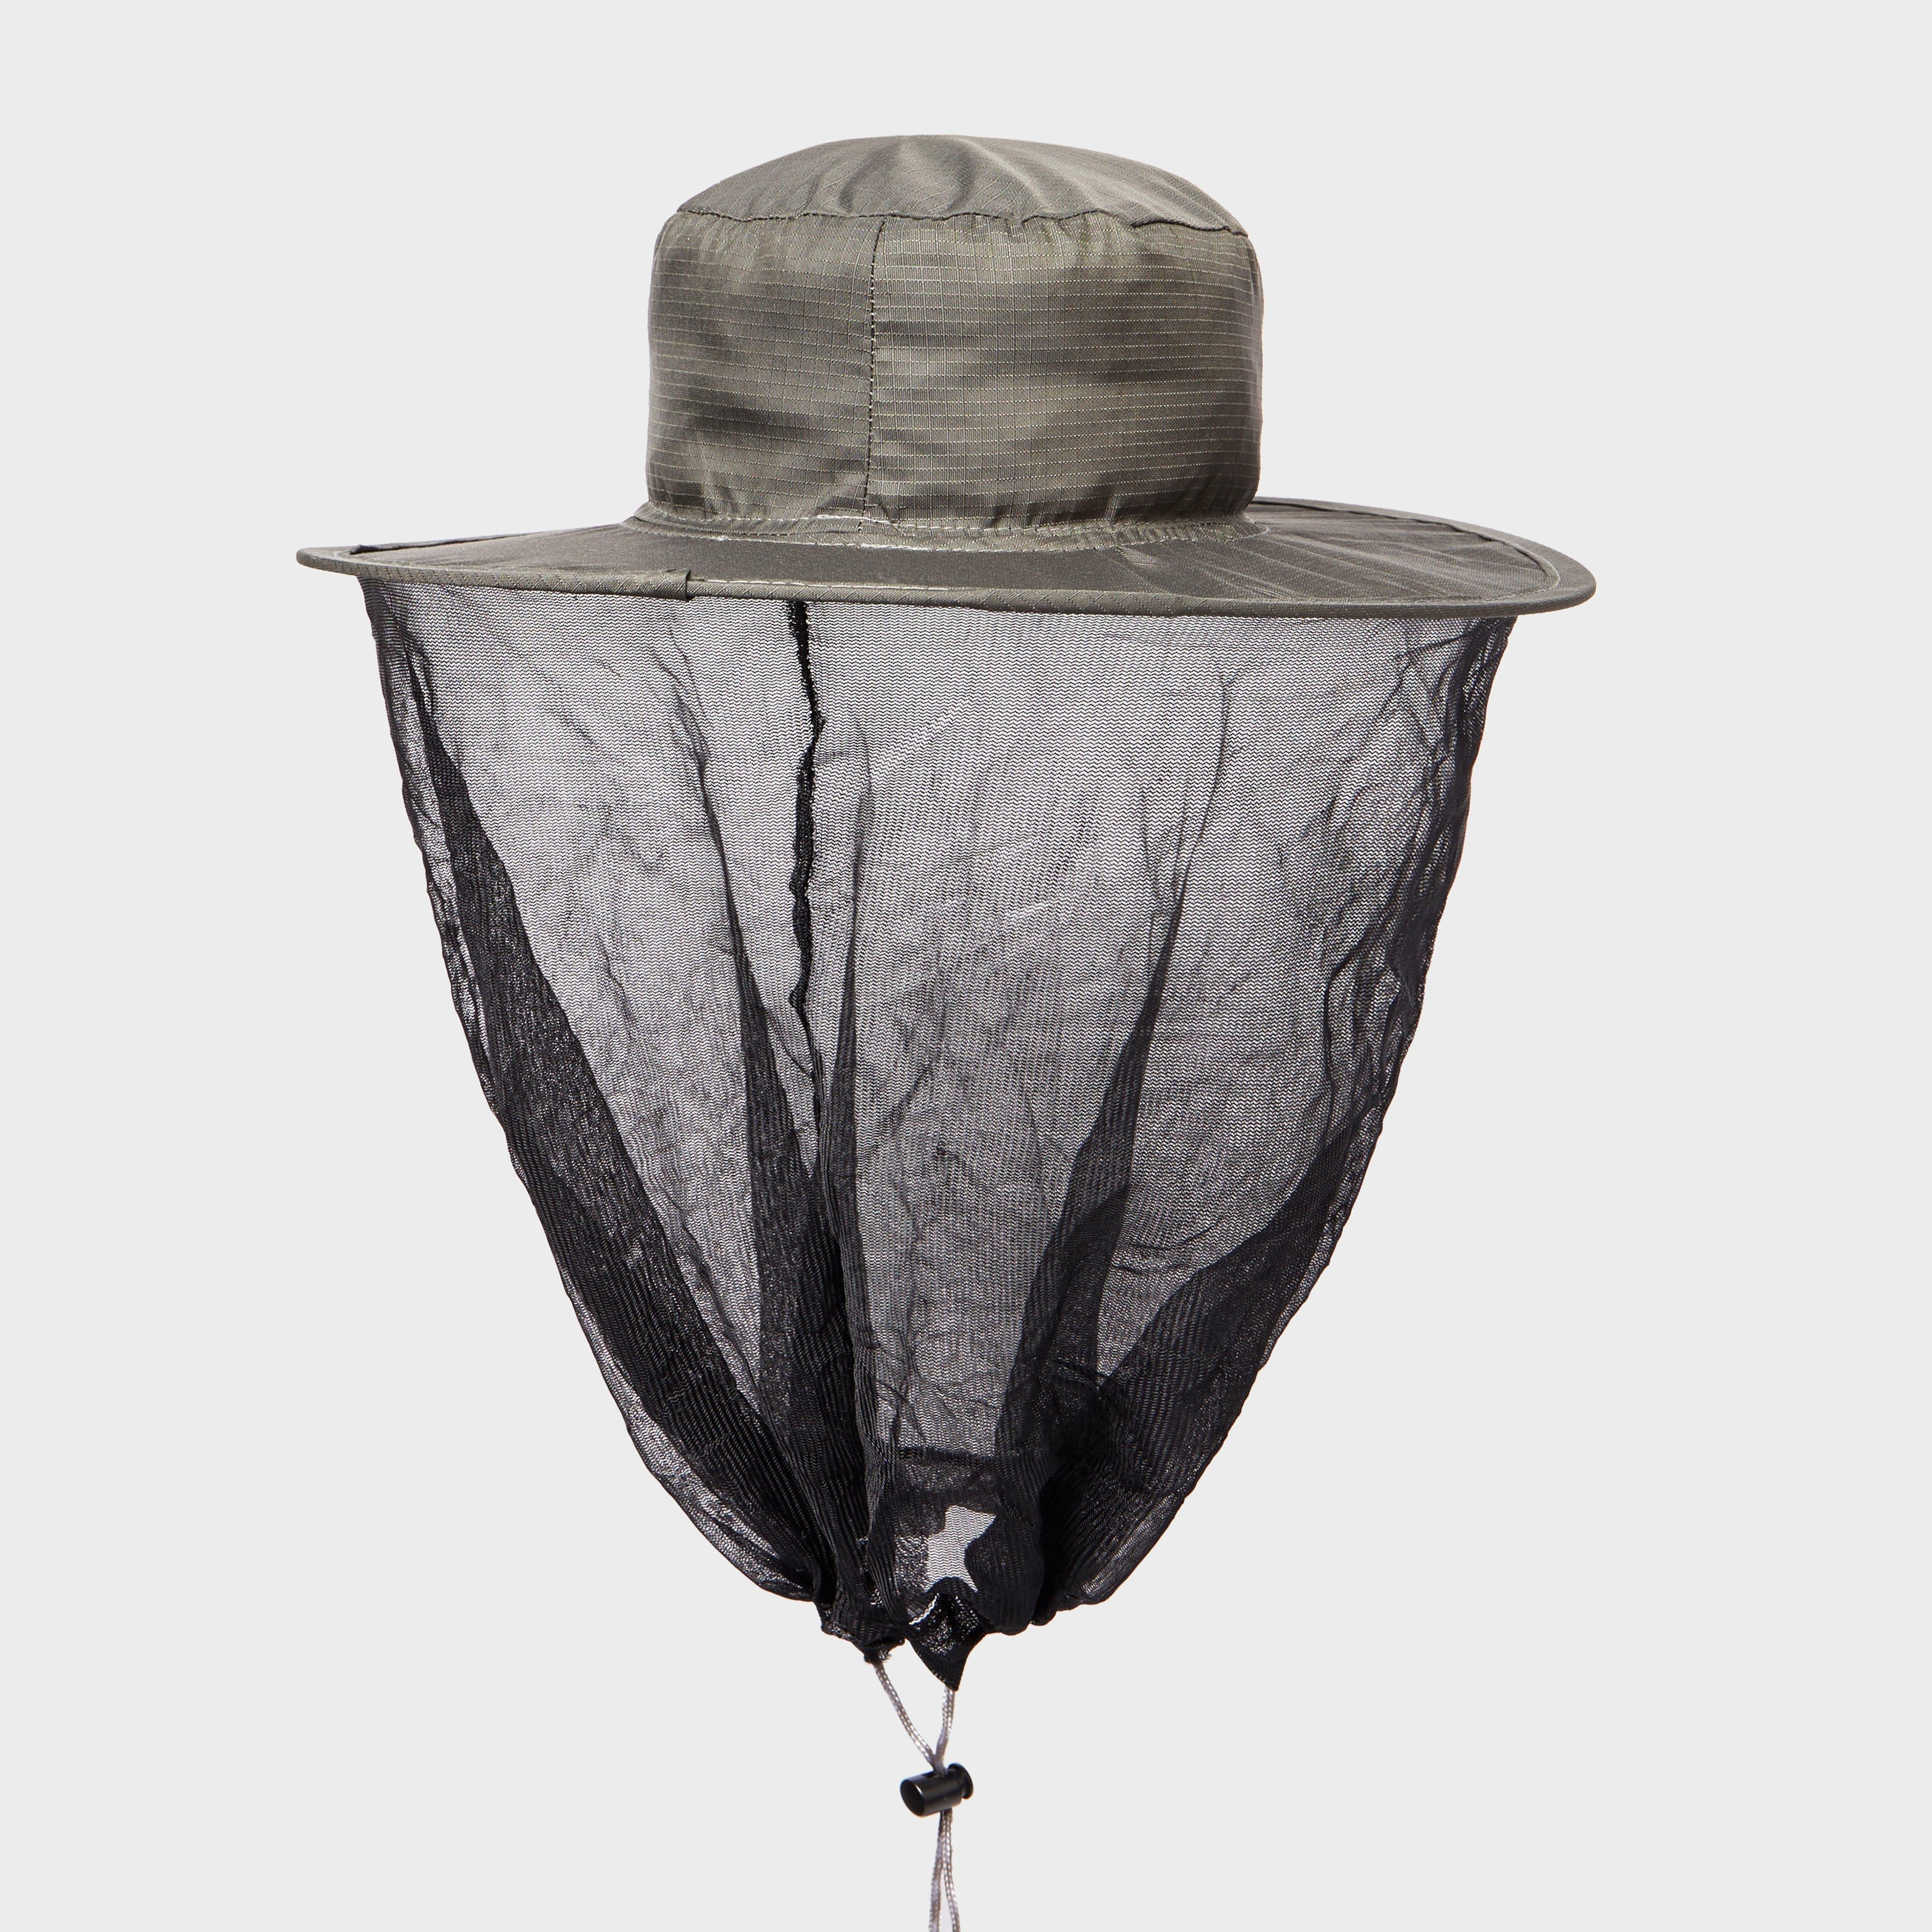 Lifesystems Lifesystems Pop Up Mosquito Head Net Hat - Black, Black